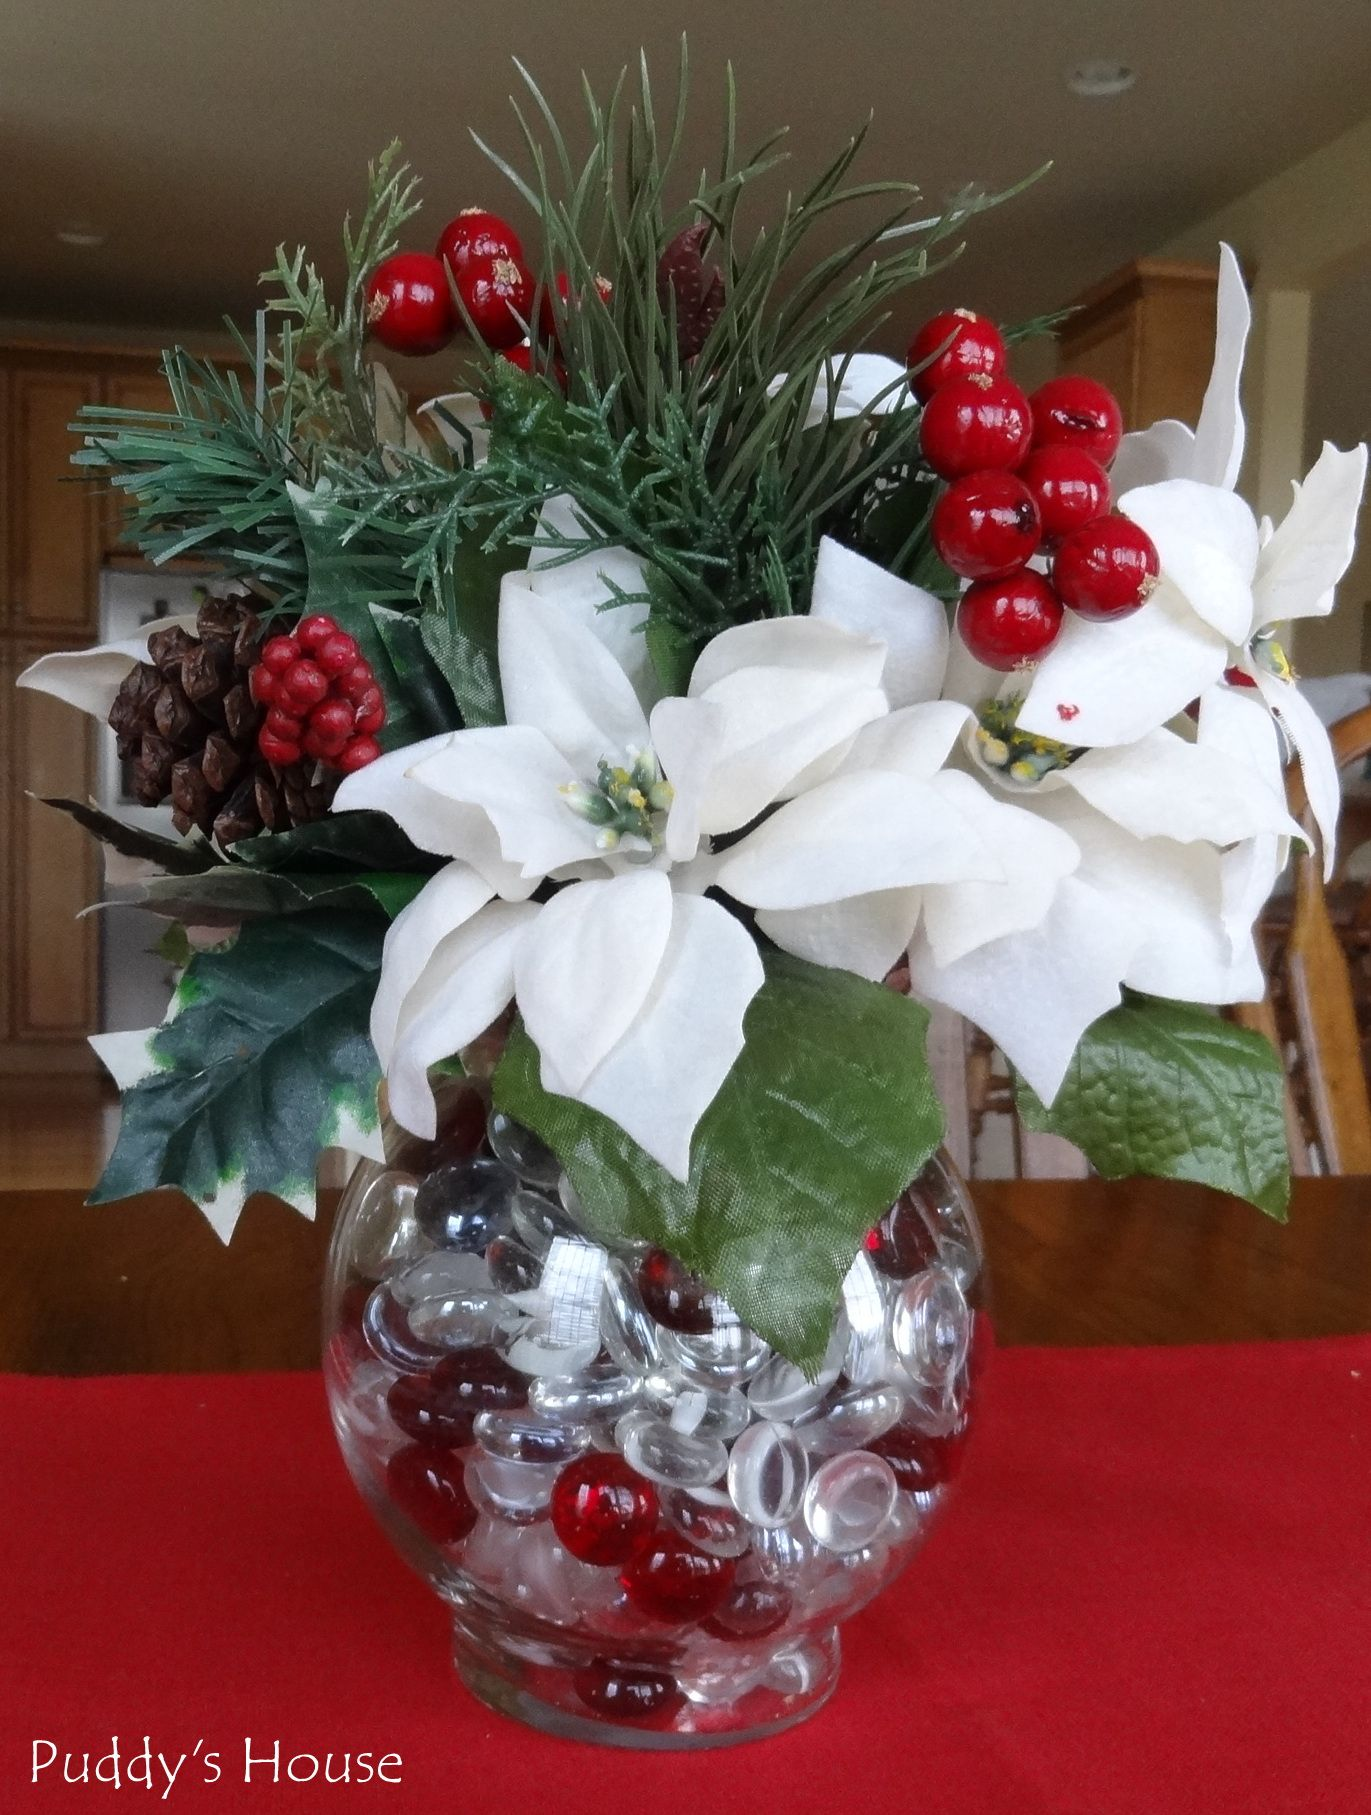 #7F2224 DIY Christmas Decorations Poinsettia Centerpiece  5271 decoration table noel mauve 1371x1815 px @ aertt.com